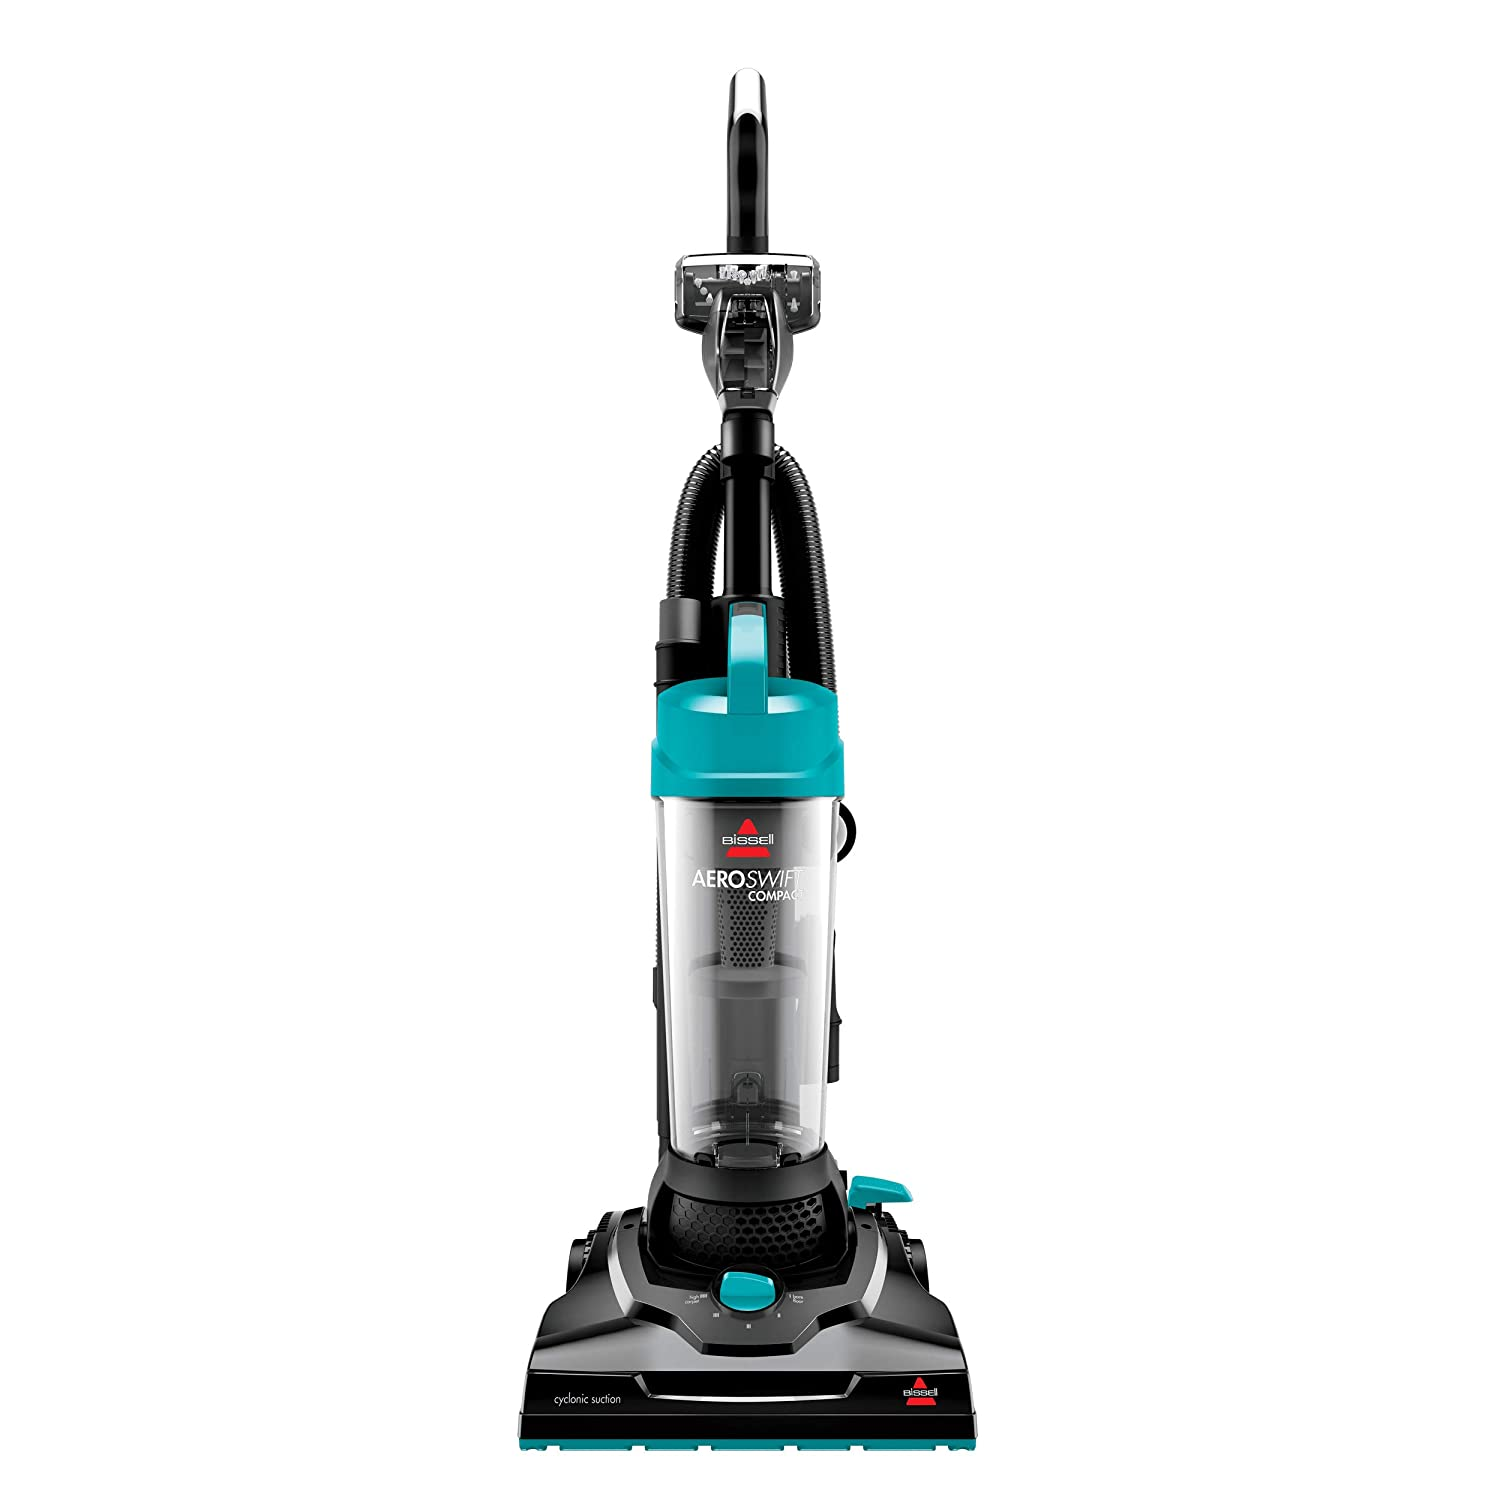 BISSELL Aeroswift Compact Vacuum Cleaner, 26129, 24619